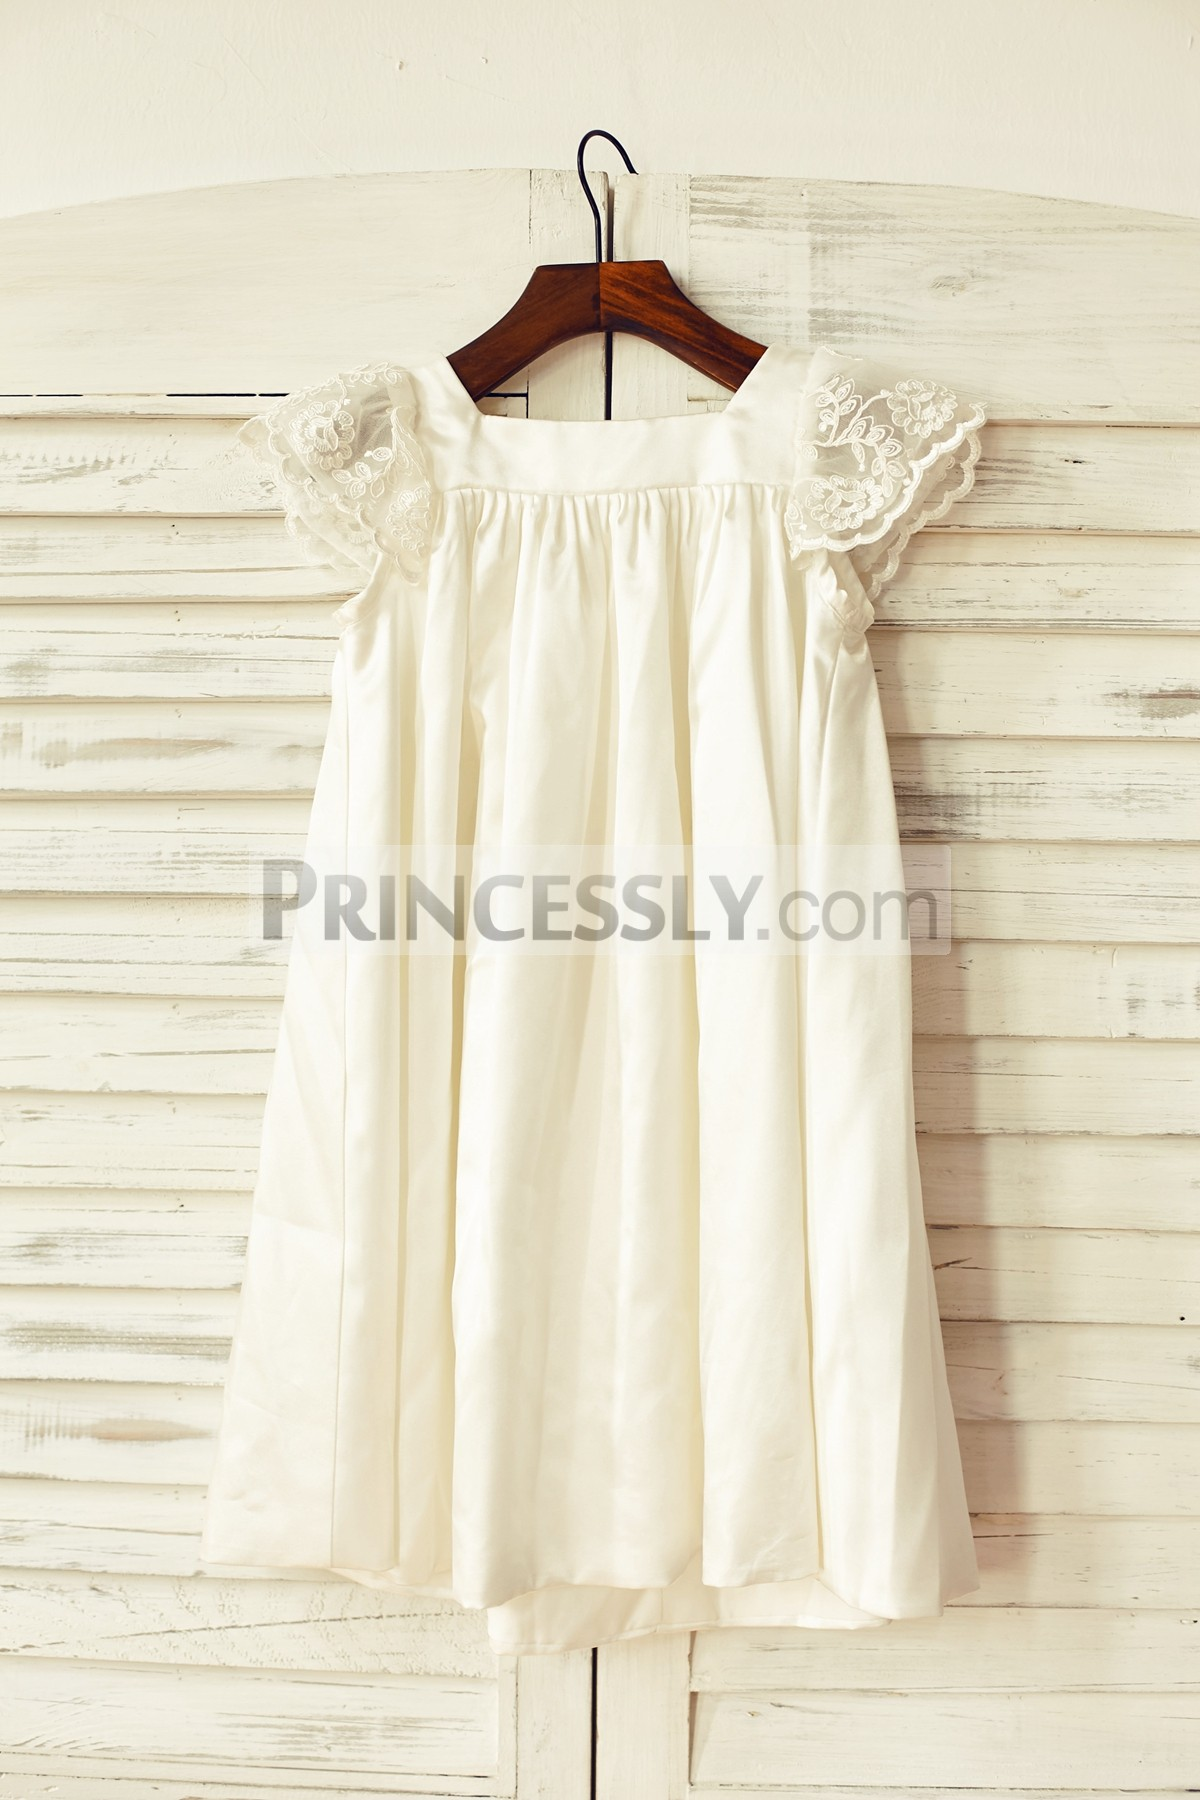 Sheer Lace Cap Sleeves Ivory Satin Wedding Baby Girl Dress